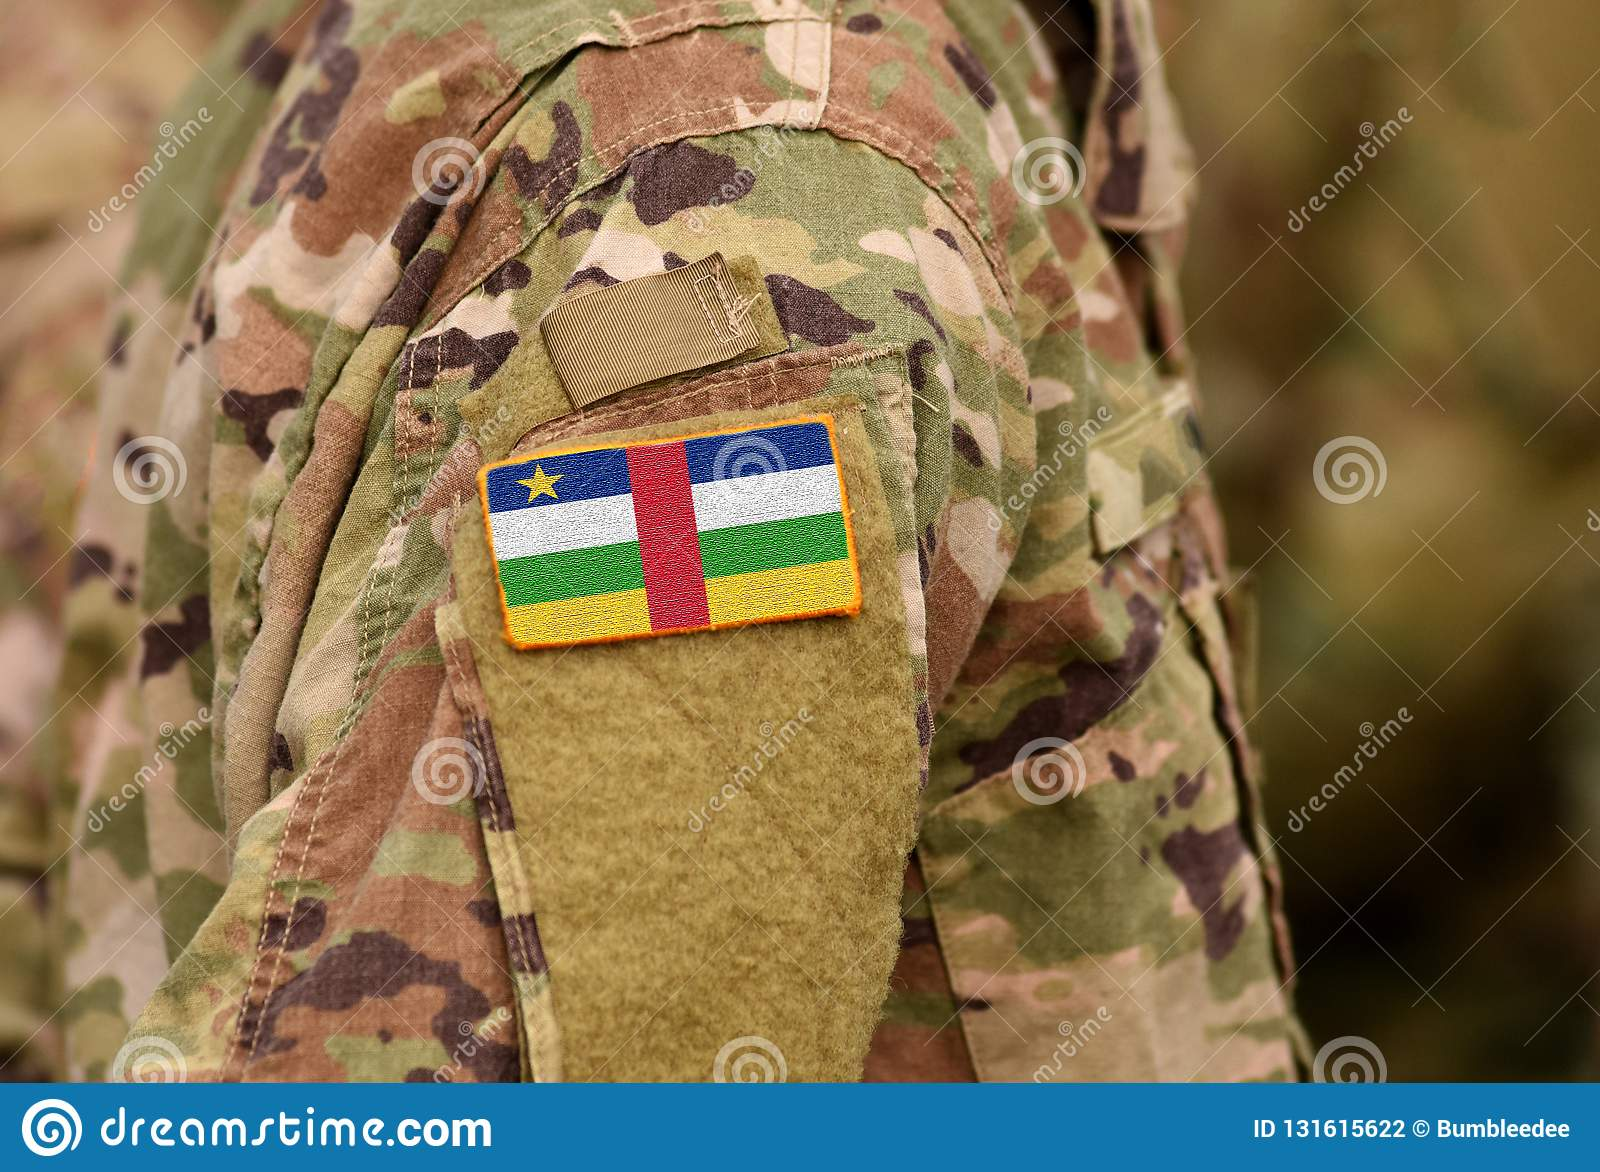 Central African Republic flag on soldiers arm. Central African Republic troops collage